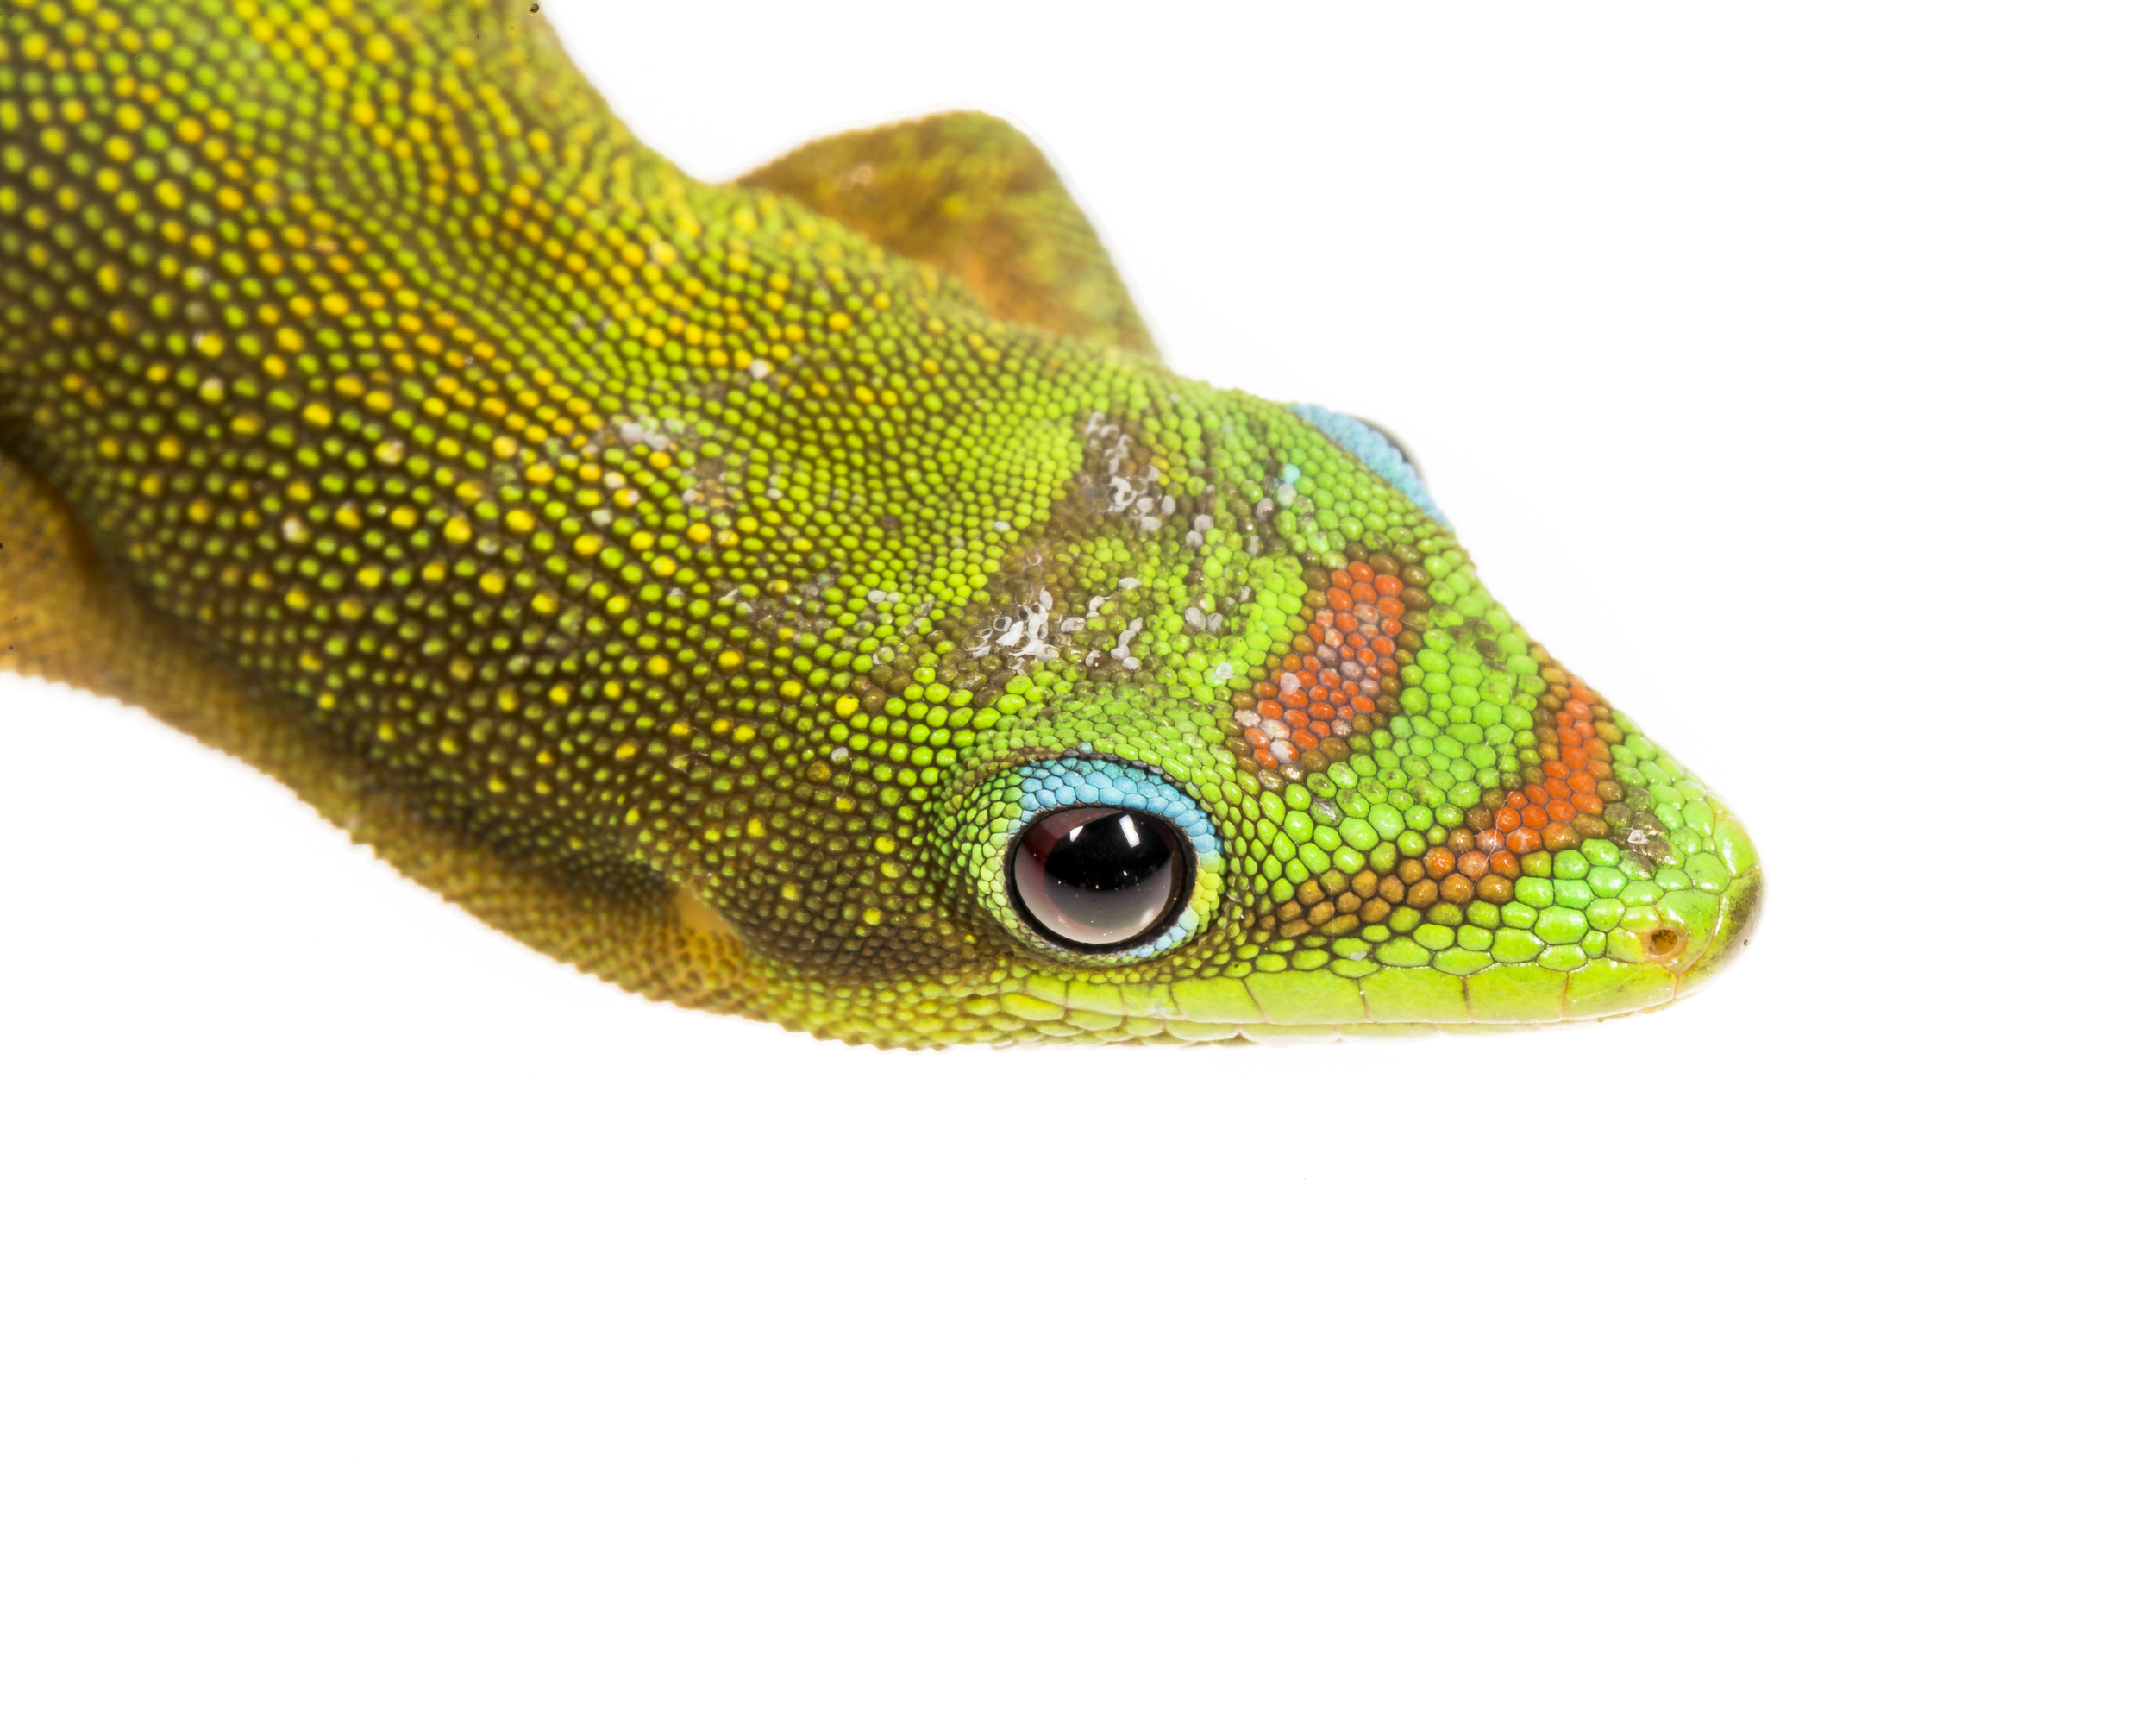 Gold Dust Day Gecko -  Phelsuma laticauda